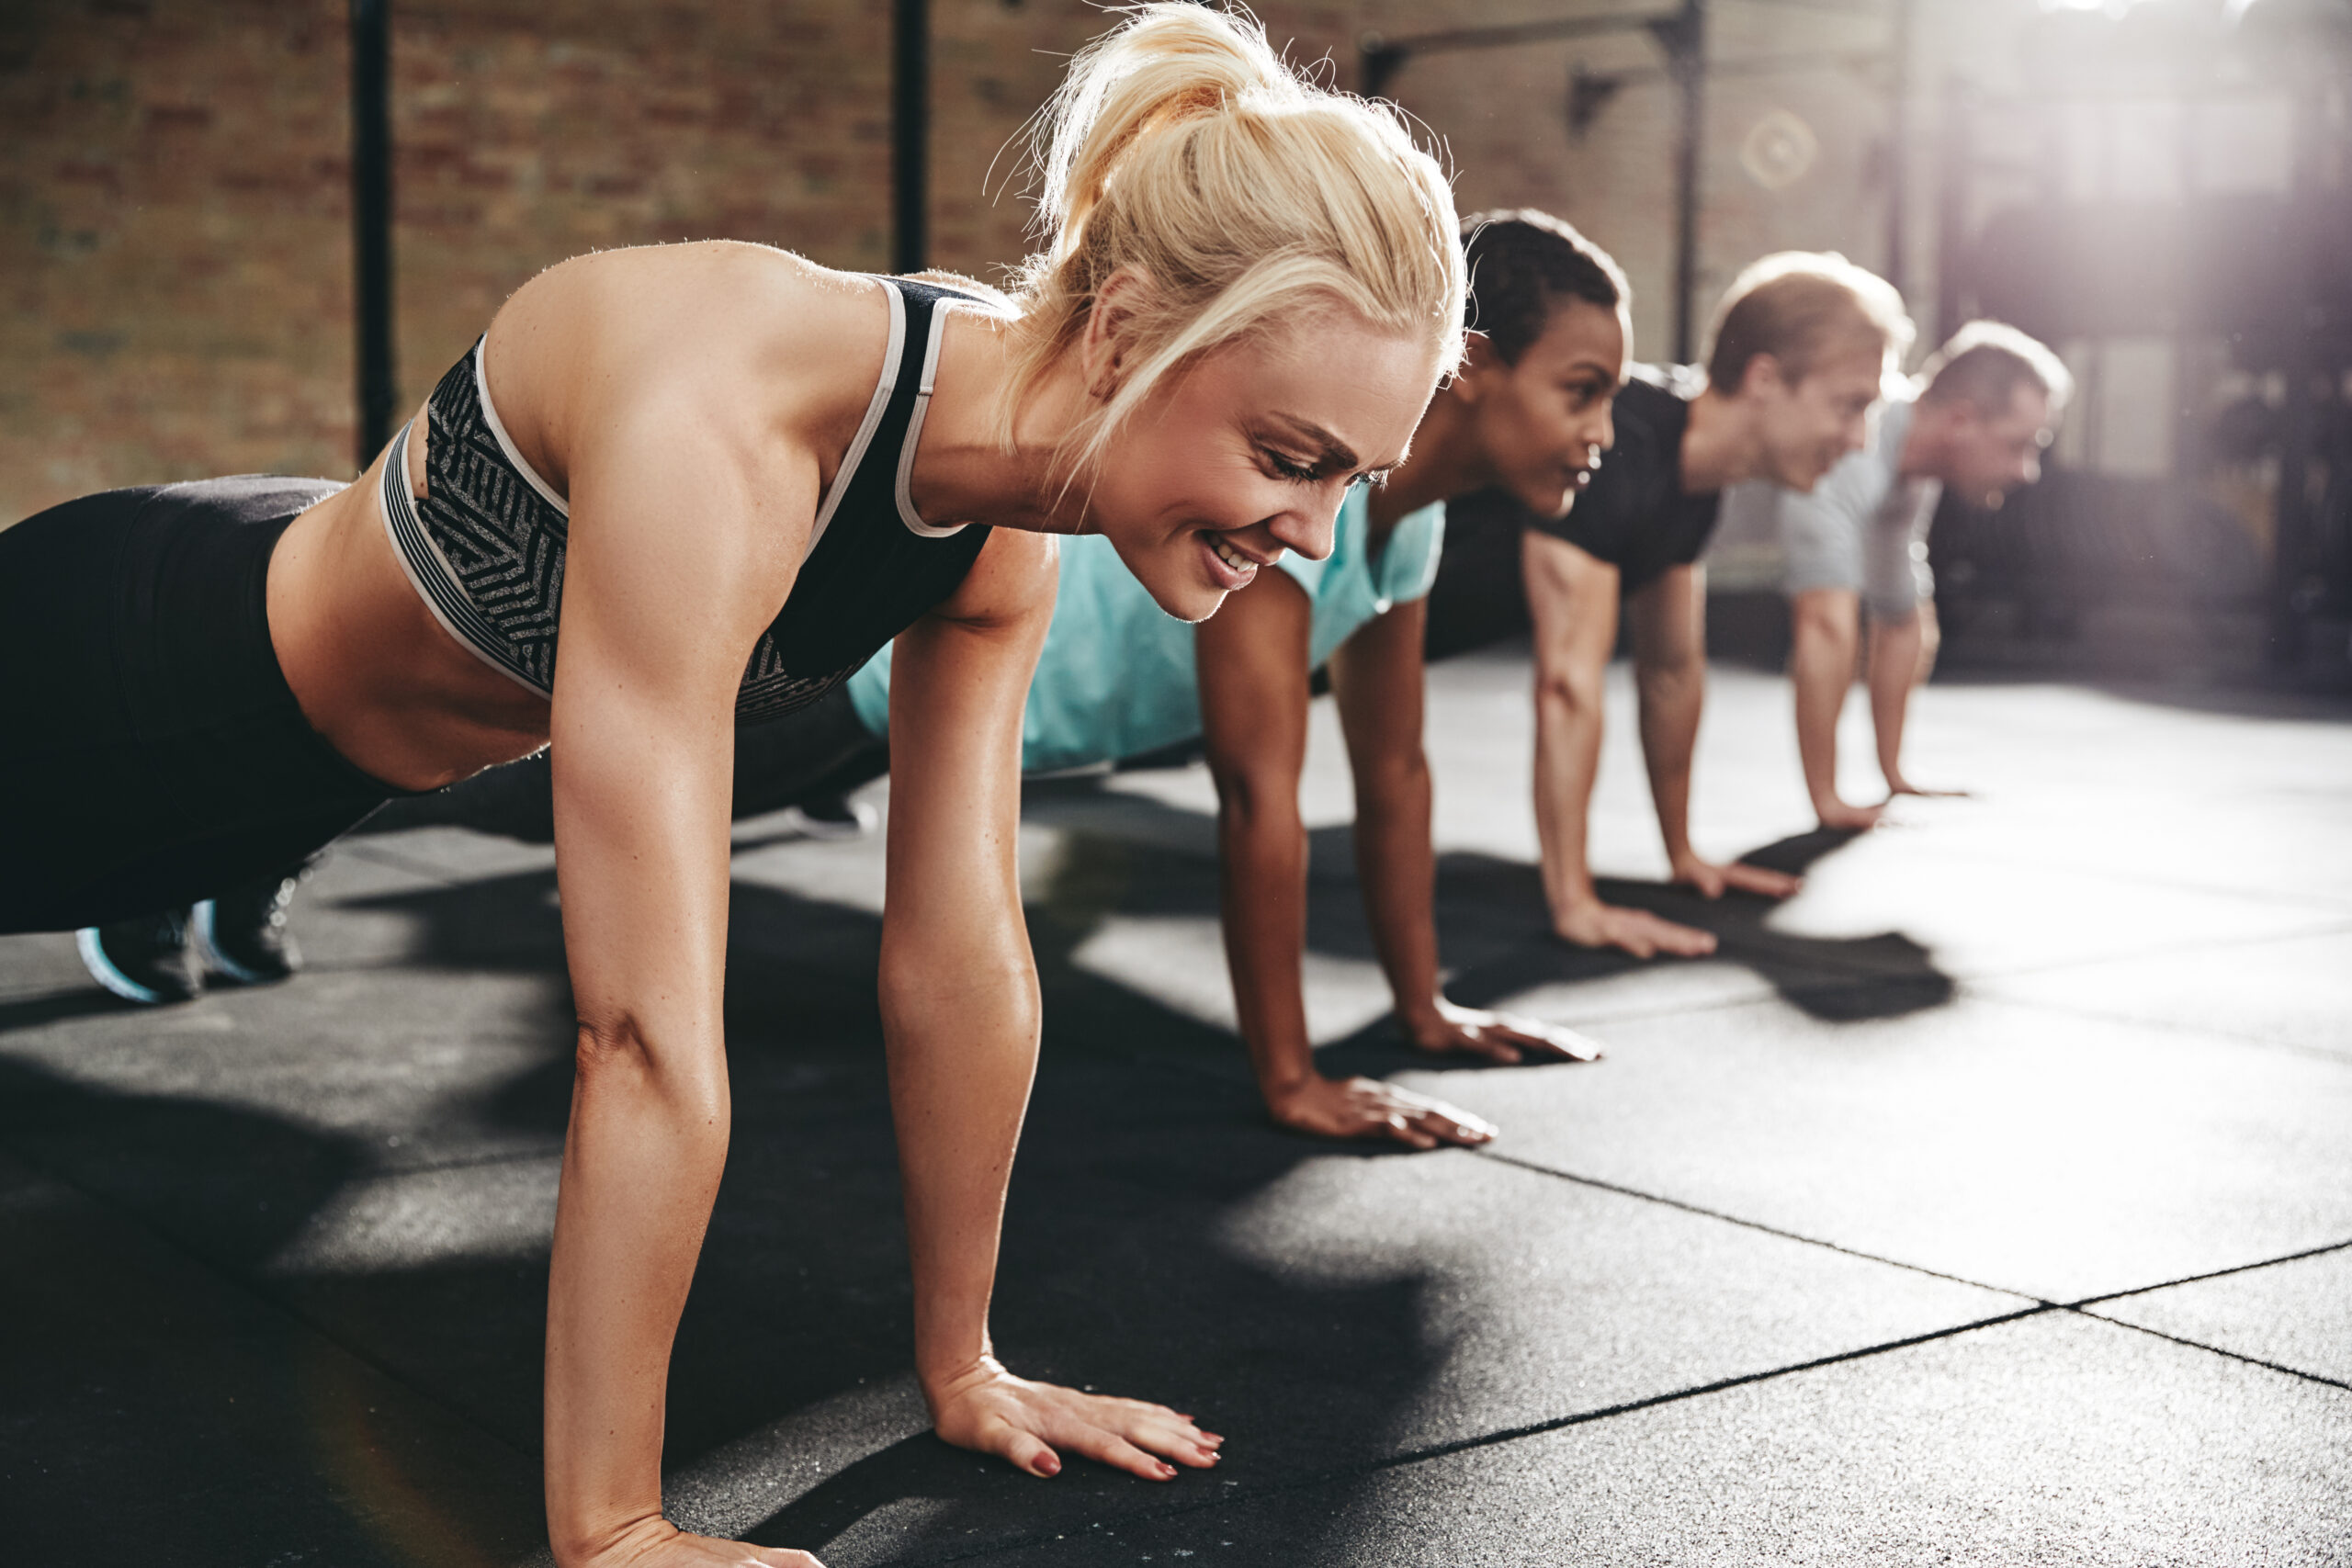 Smiling woman doing pushups during an exercise class